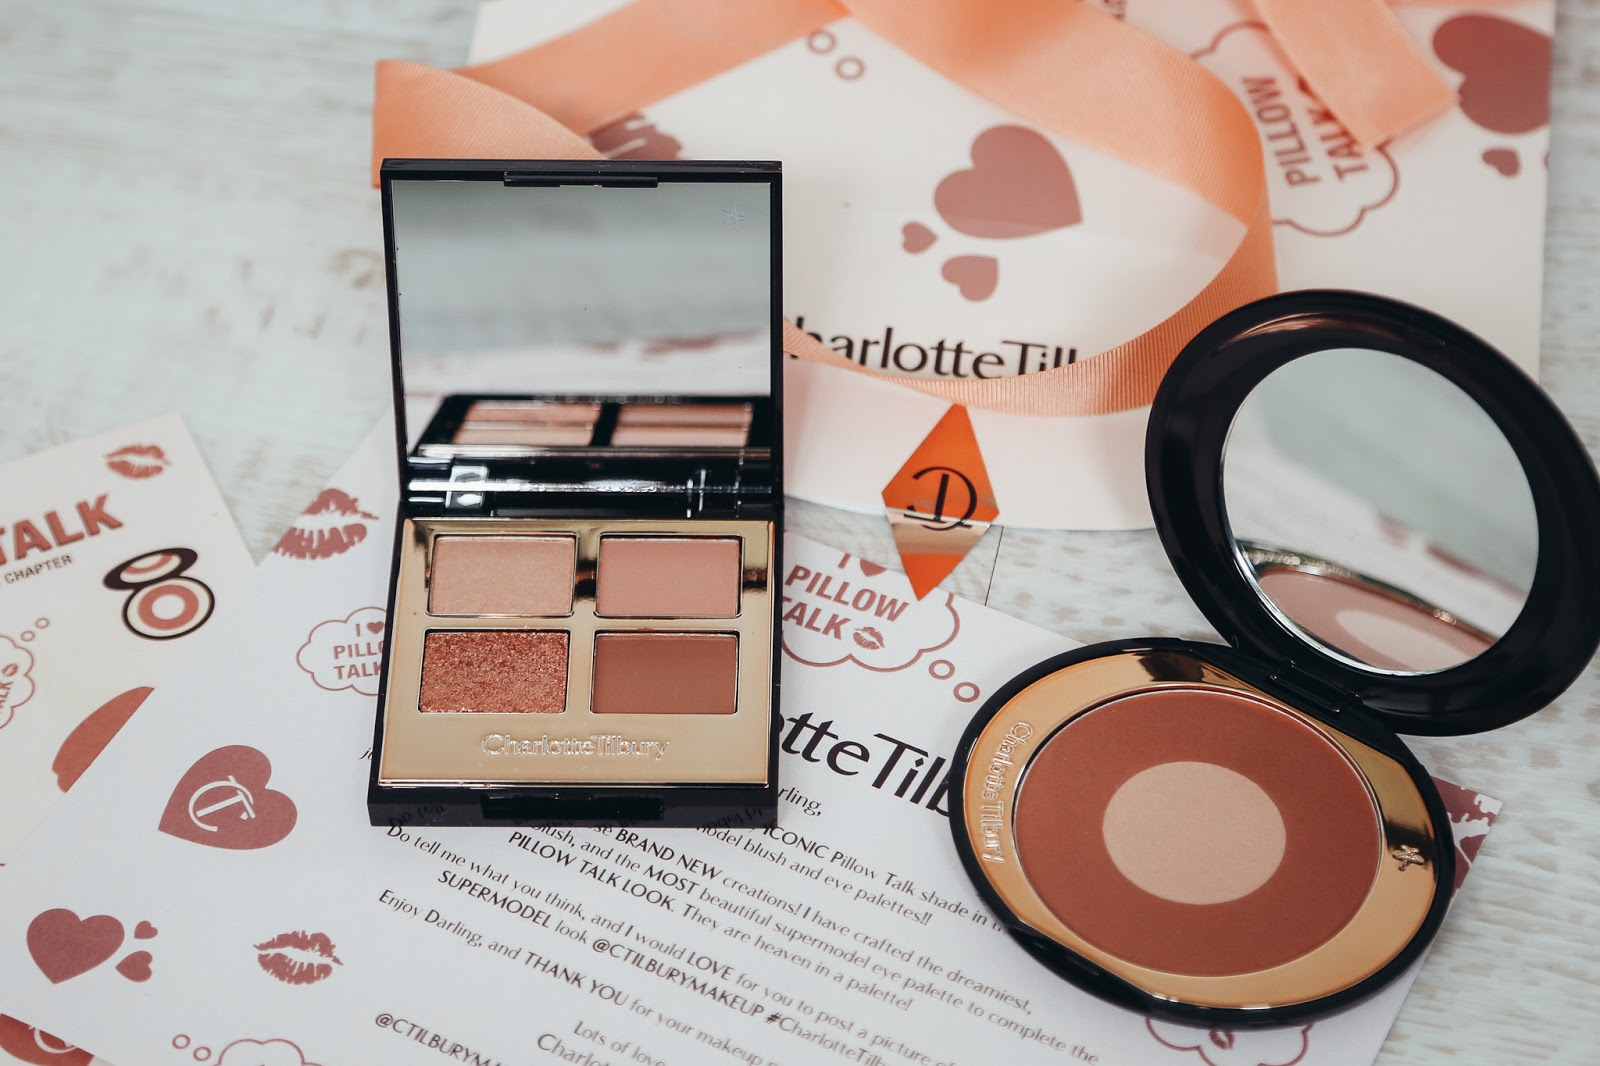 Charlotte Tilbury Pillow Talk Blush and eye shadow